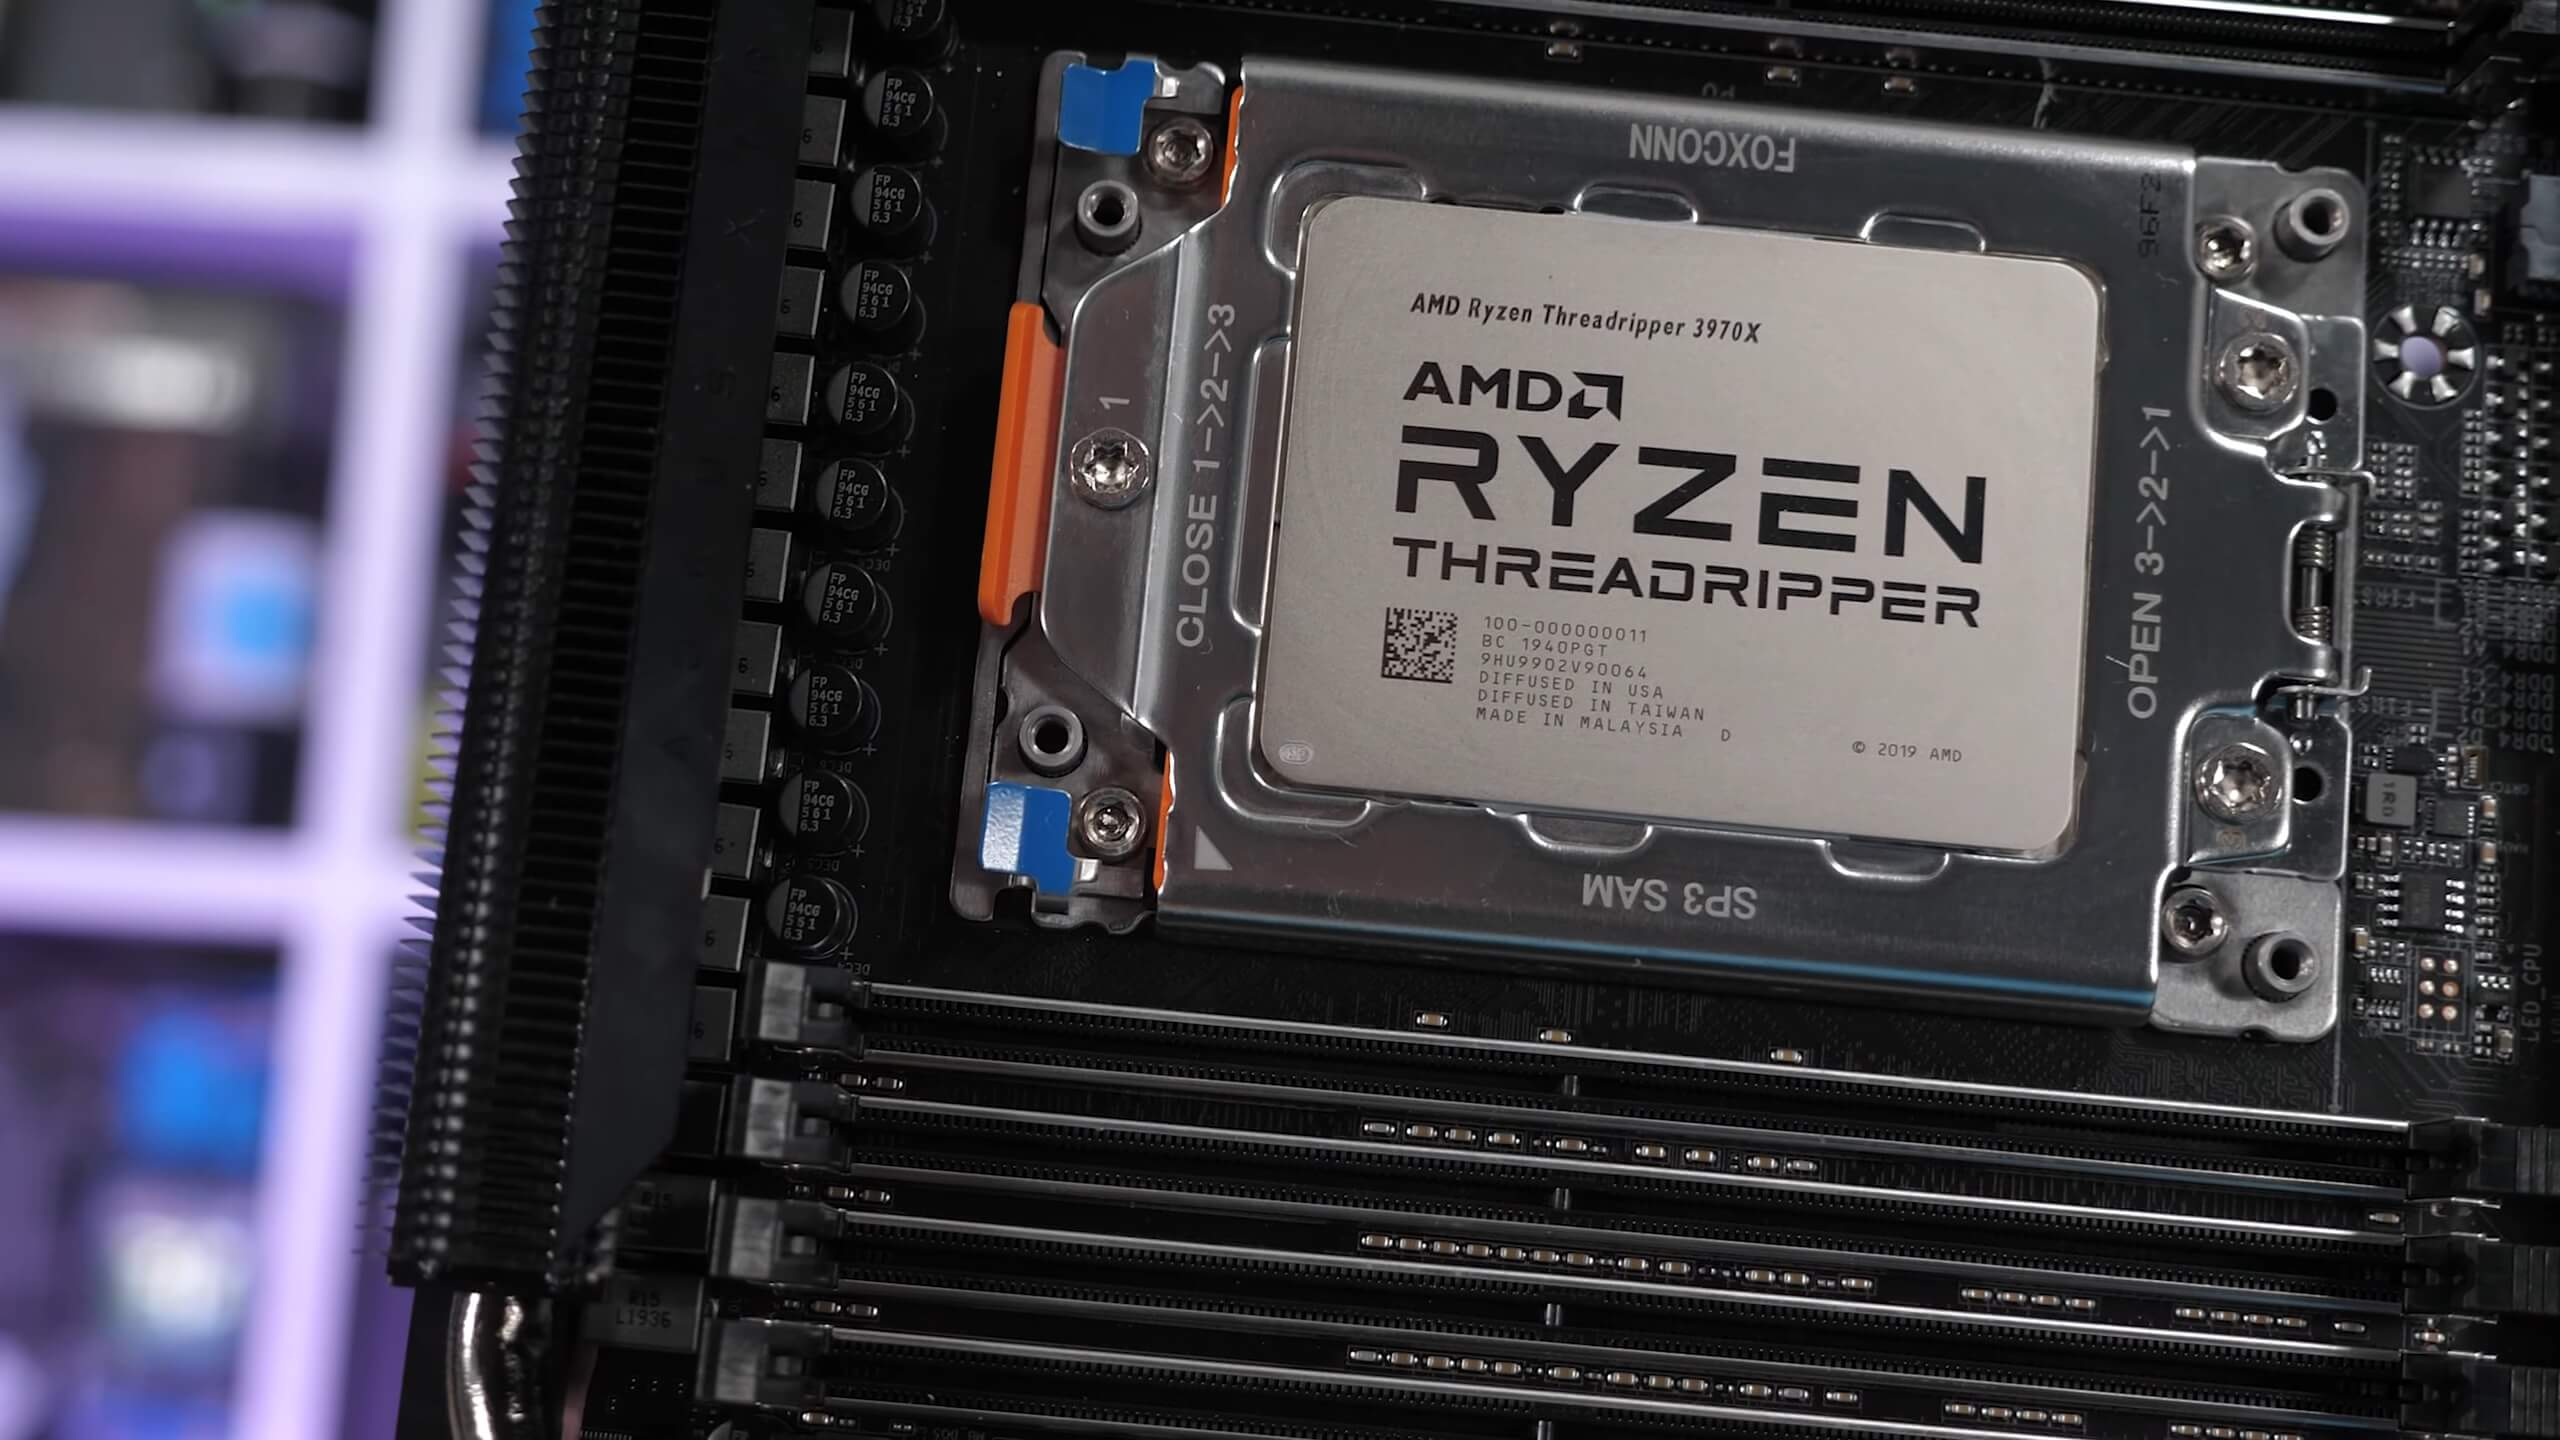 Chip competes with AMD and Intel's CES 2020 announcements